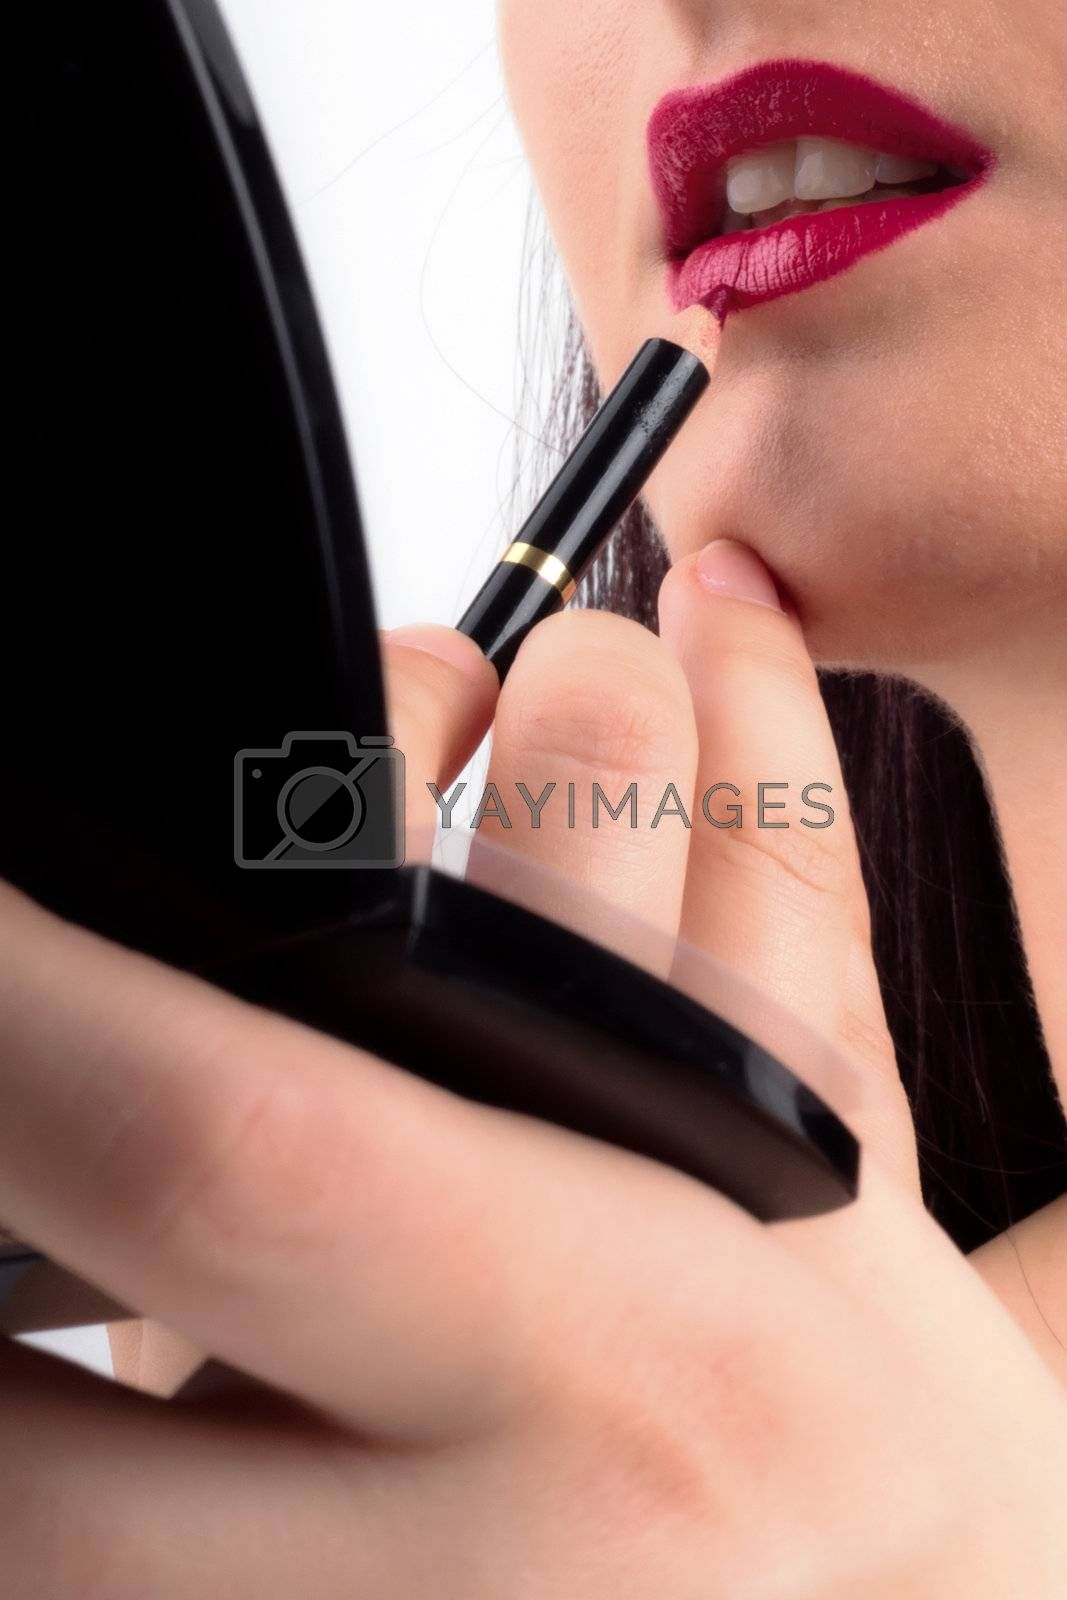 Part of Attractive Woman's Face with Fashion Shiny Red Lips Makeup.